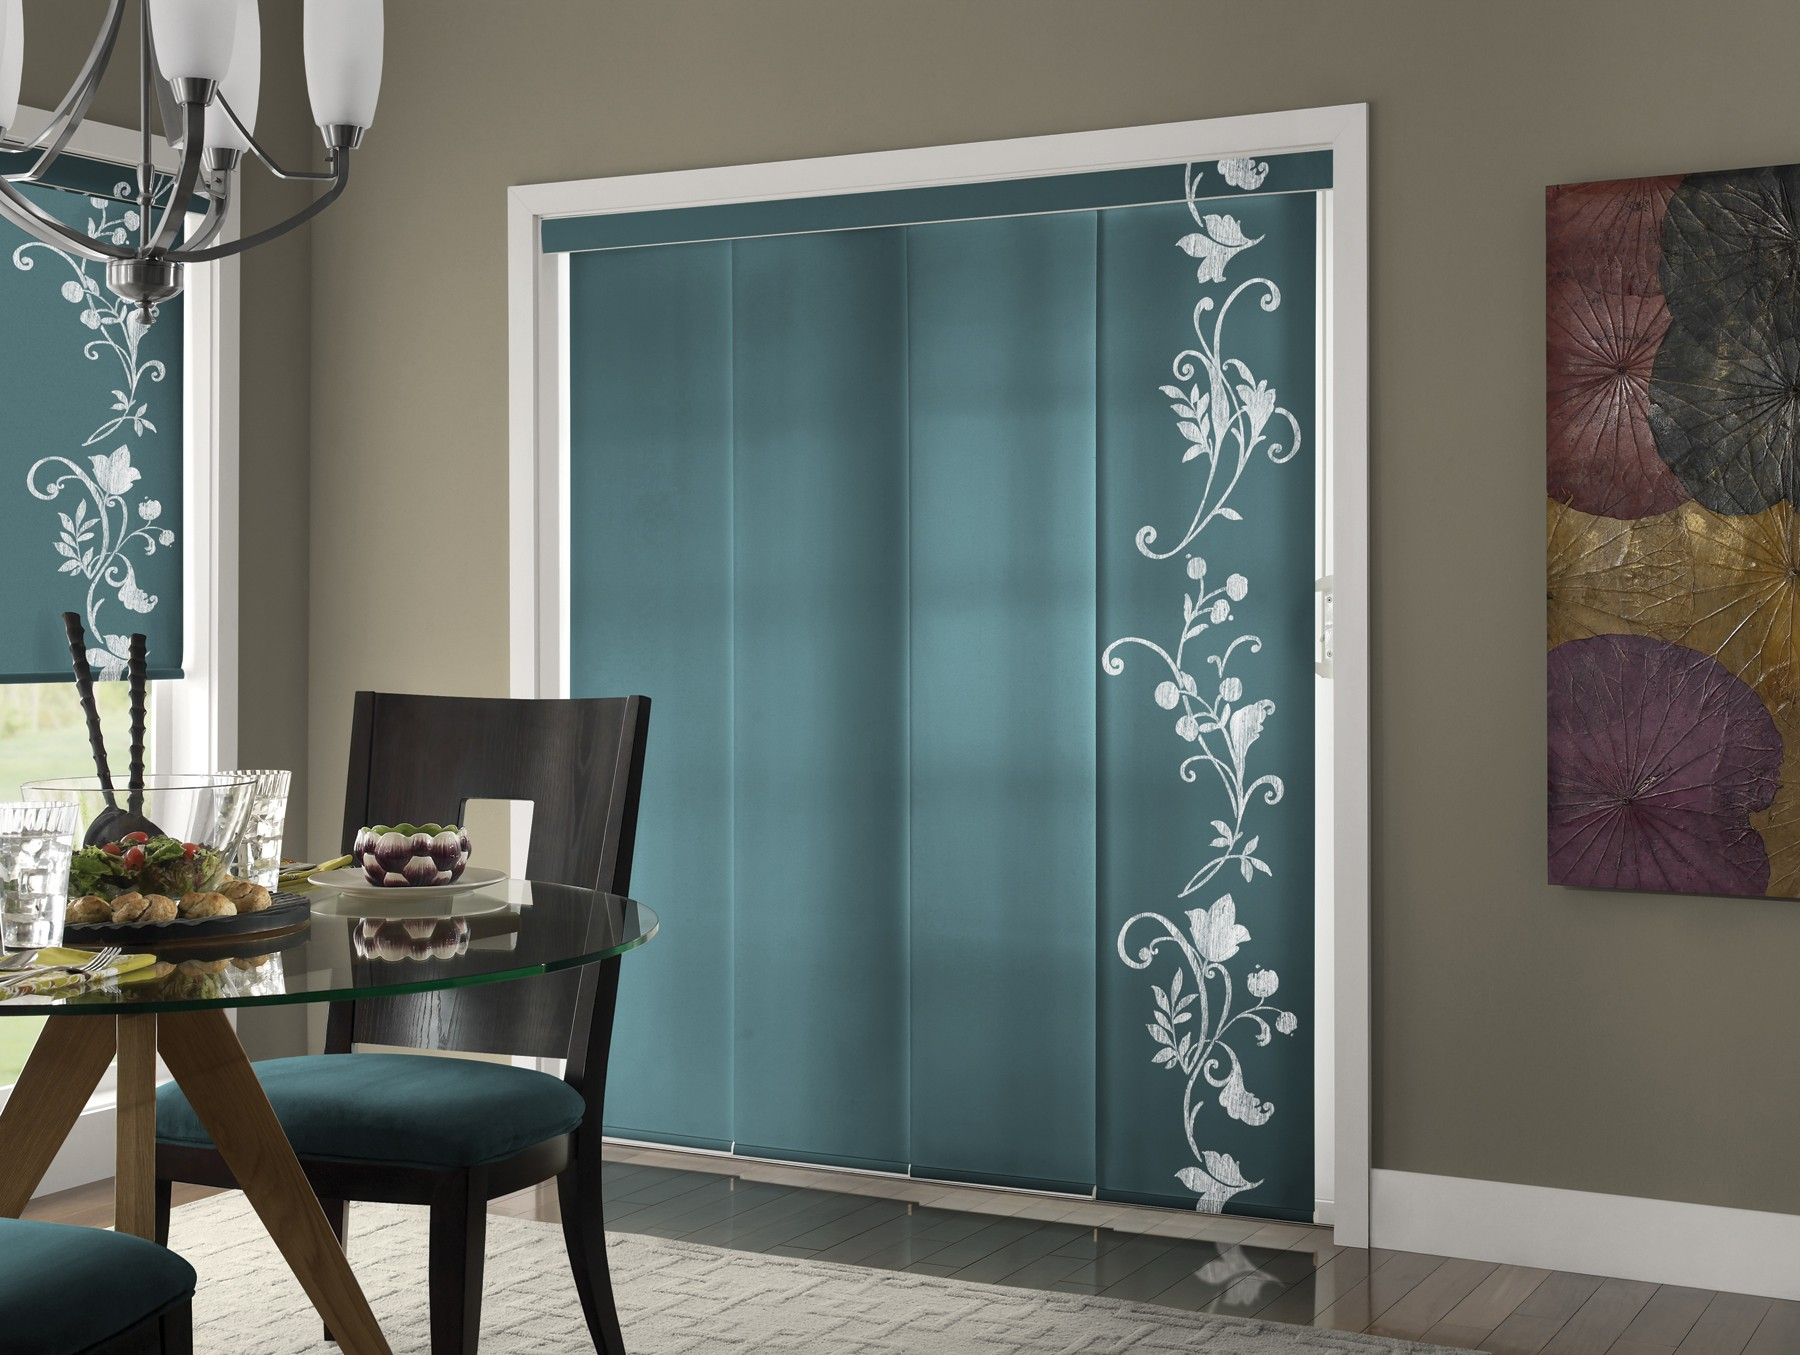 1219a-patio-door-curtains-free-download-picture